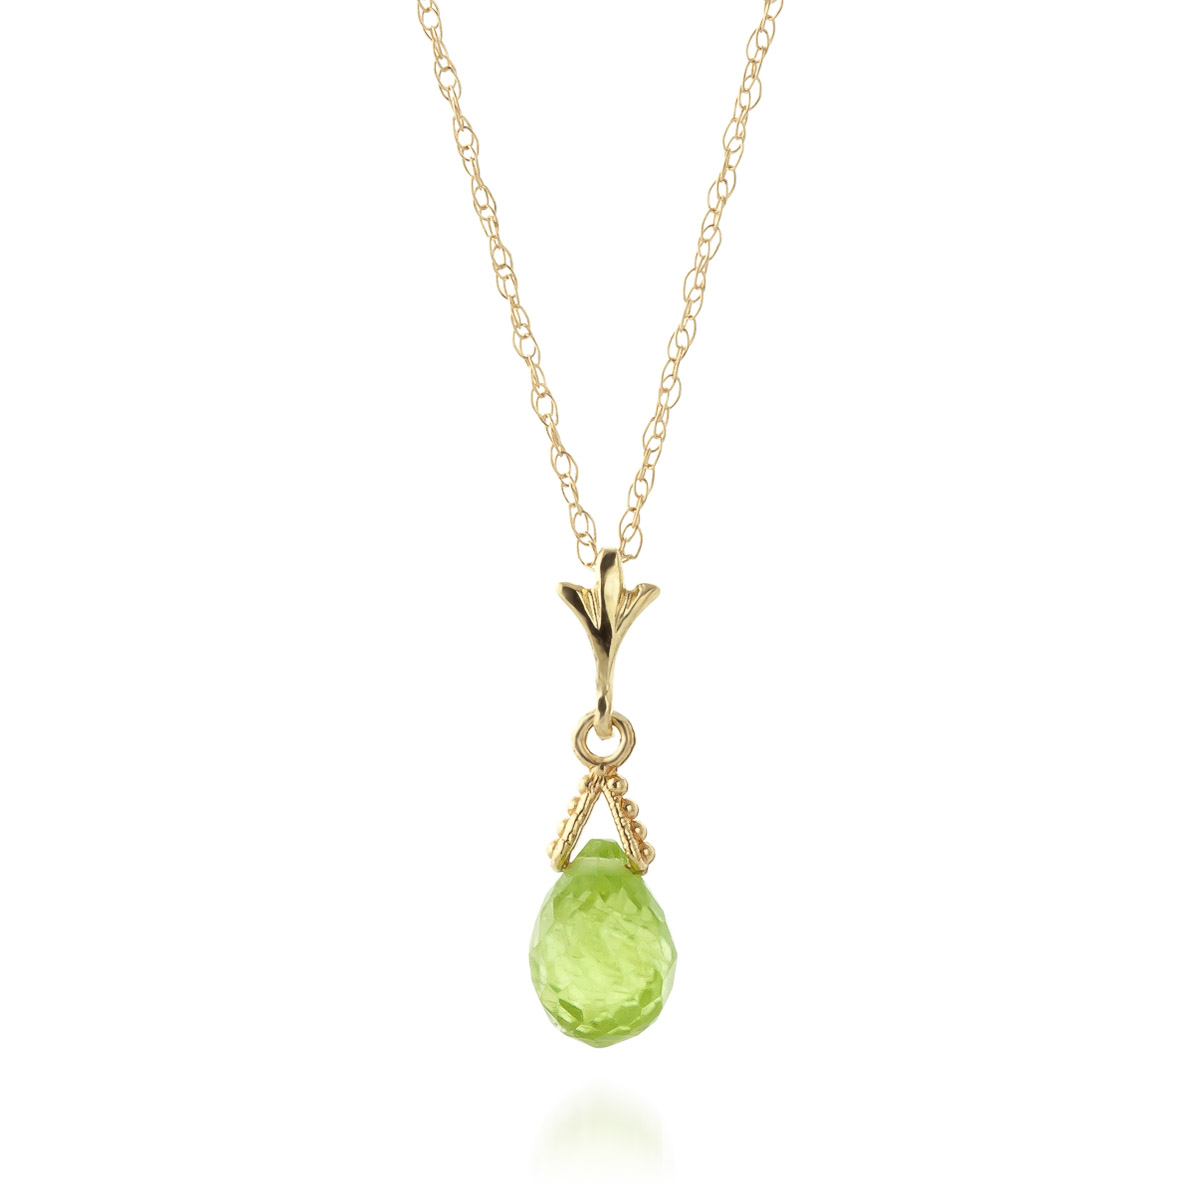 Peridot Droplet Briolette Pendant Necklace 2.5ct in 9ct Gold